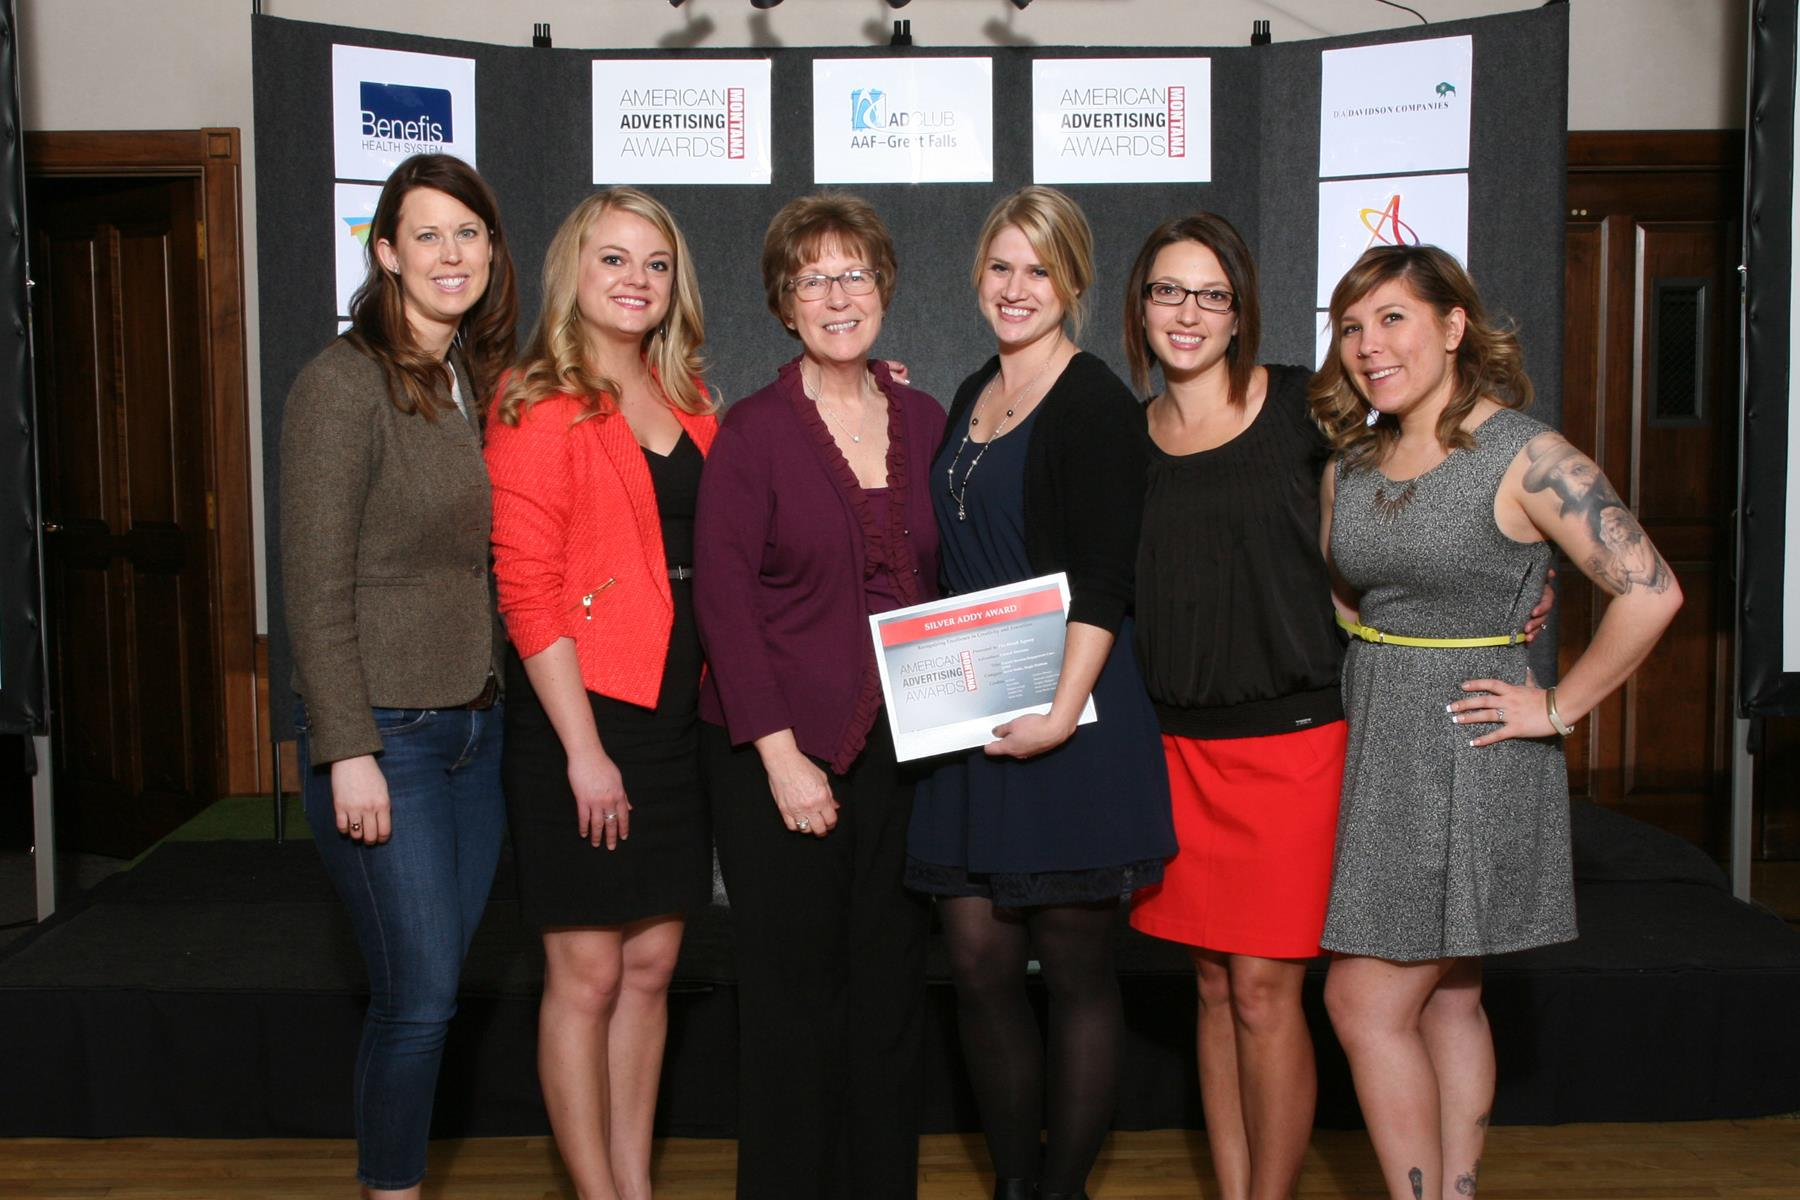 The Wendt Agency at the ADDY Awards